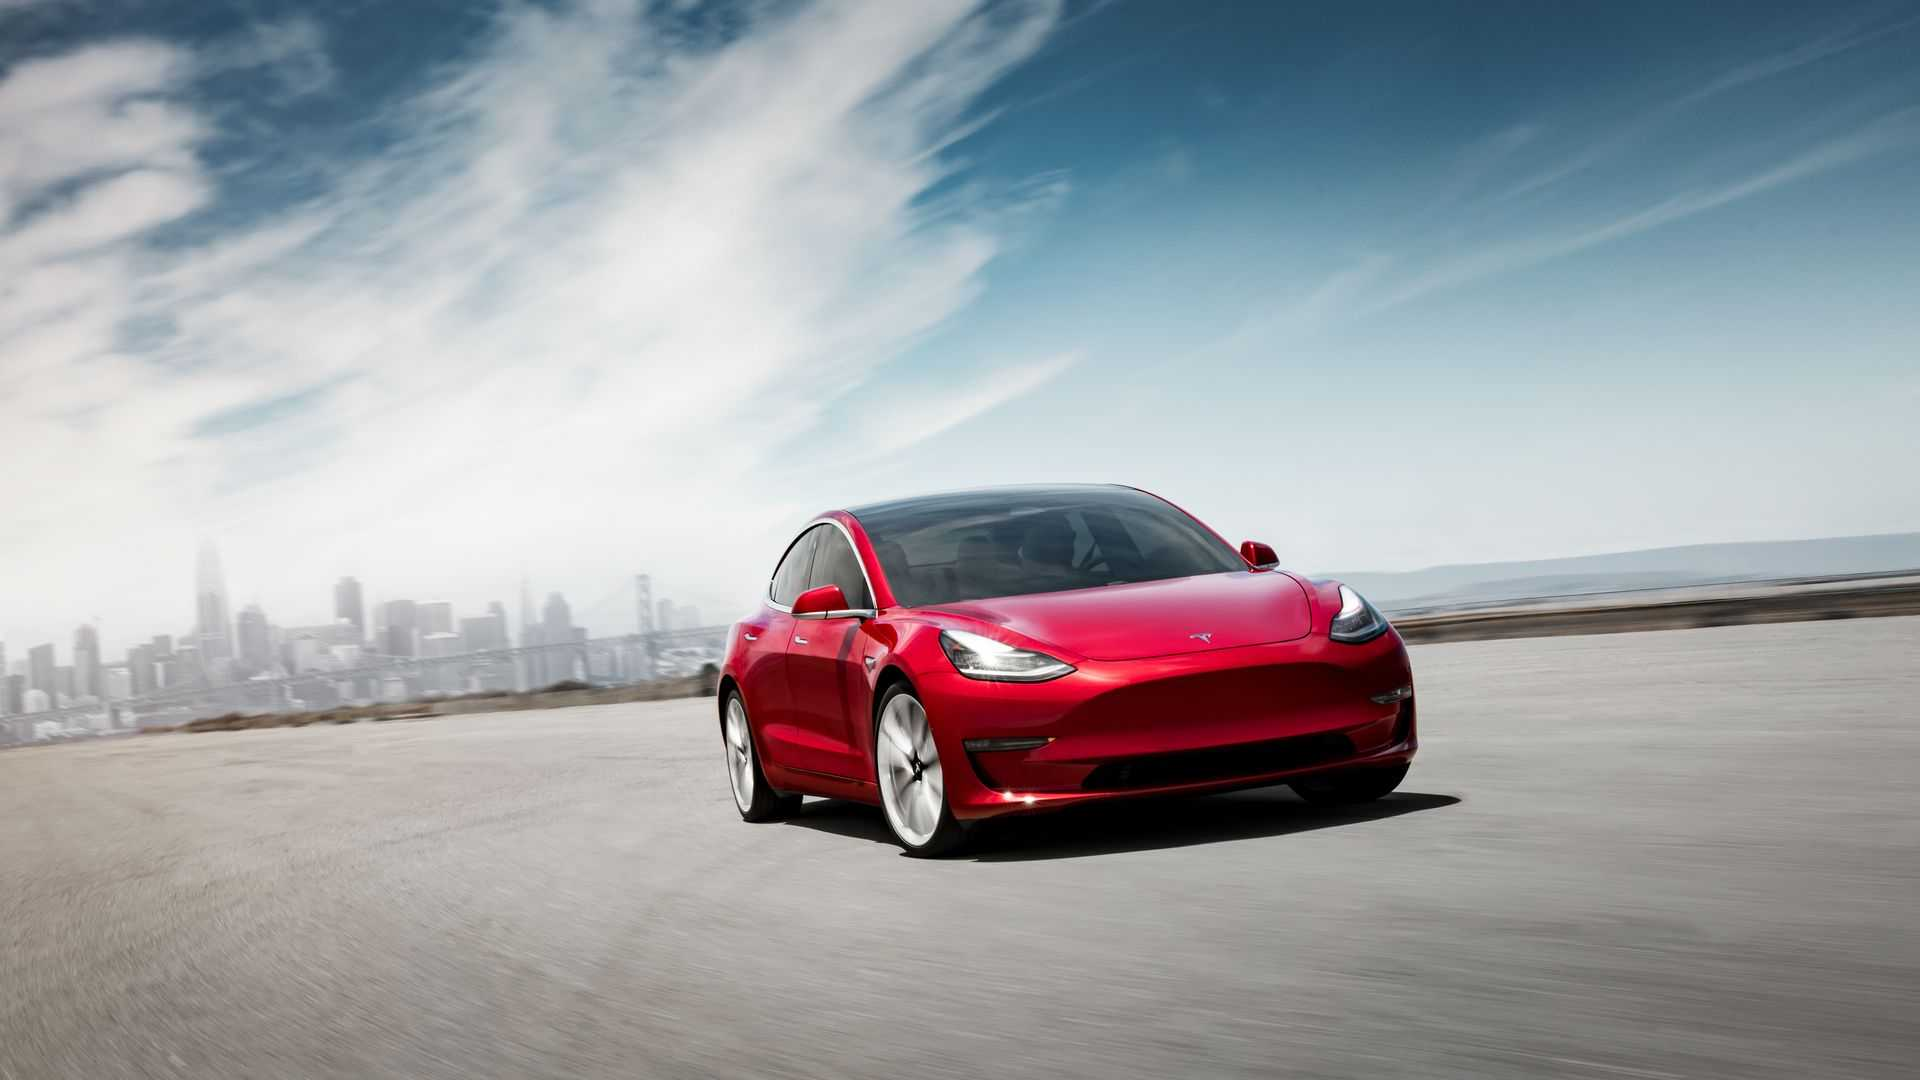 Top Gear Tesla Model 3 Performance Review: It's Combat Ready